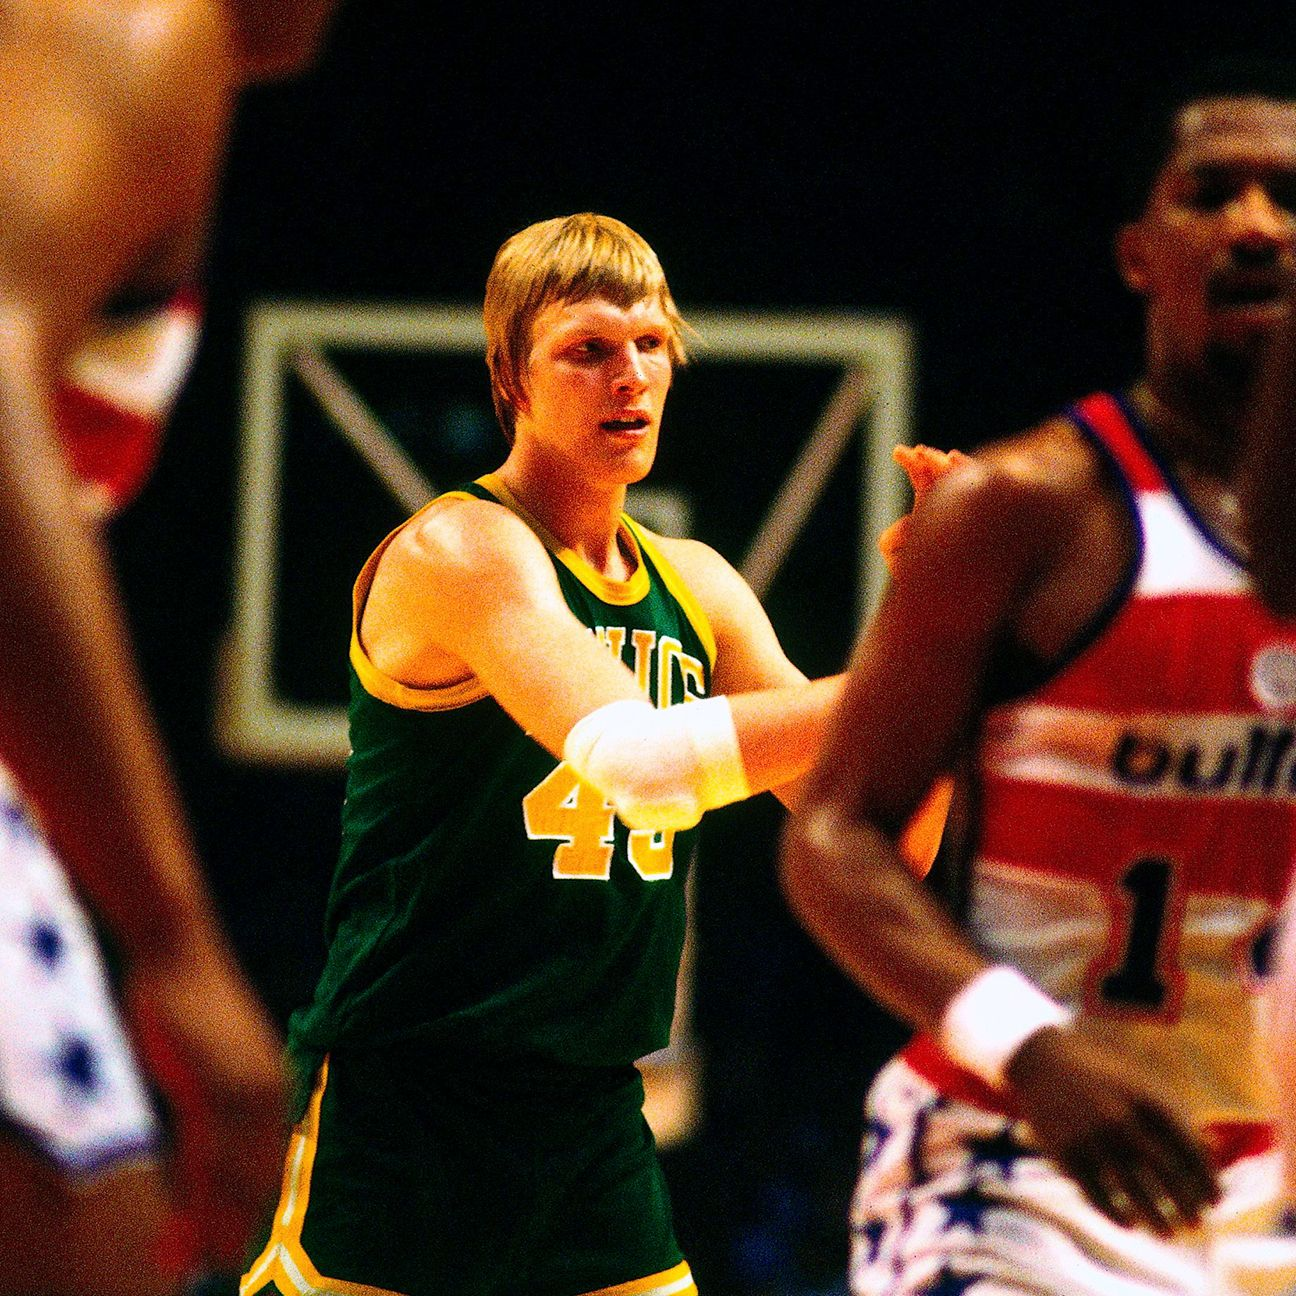 NBA - Why Jack Sikma deserves Hall of Fame in 2016